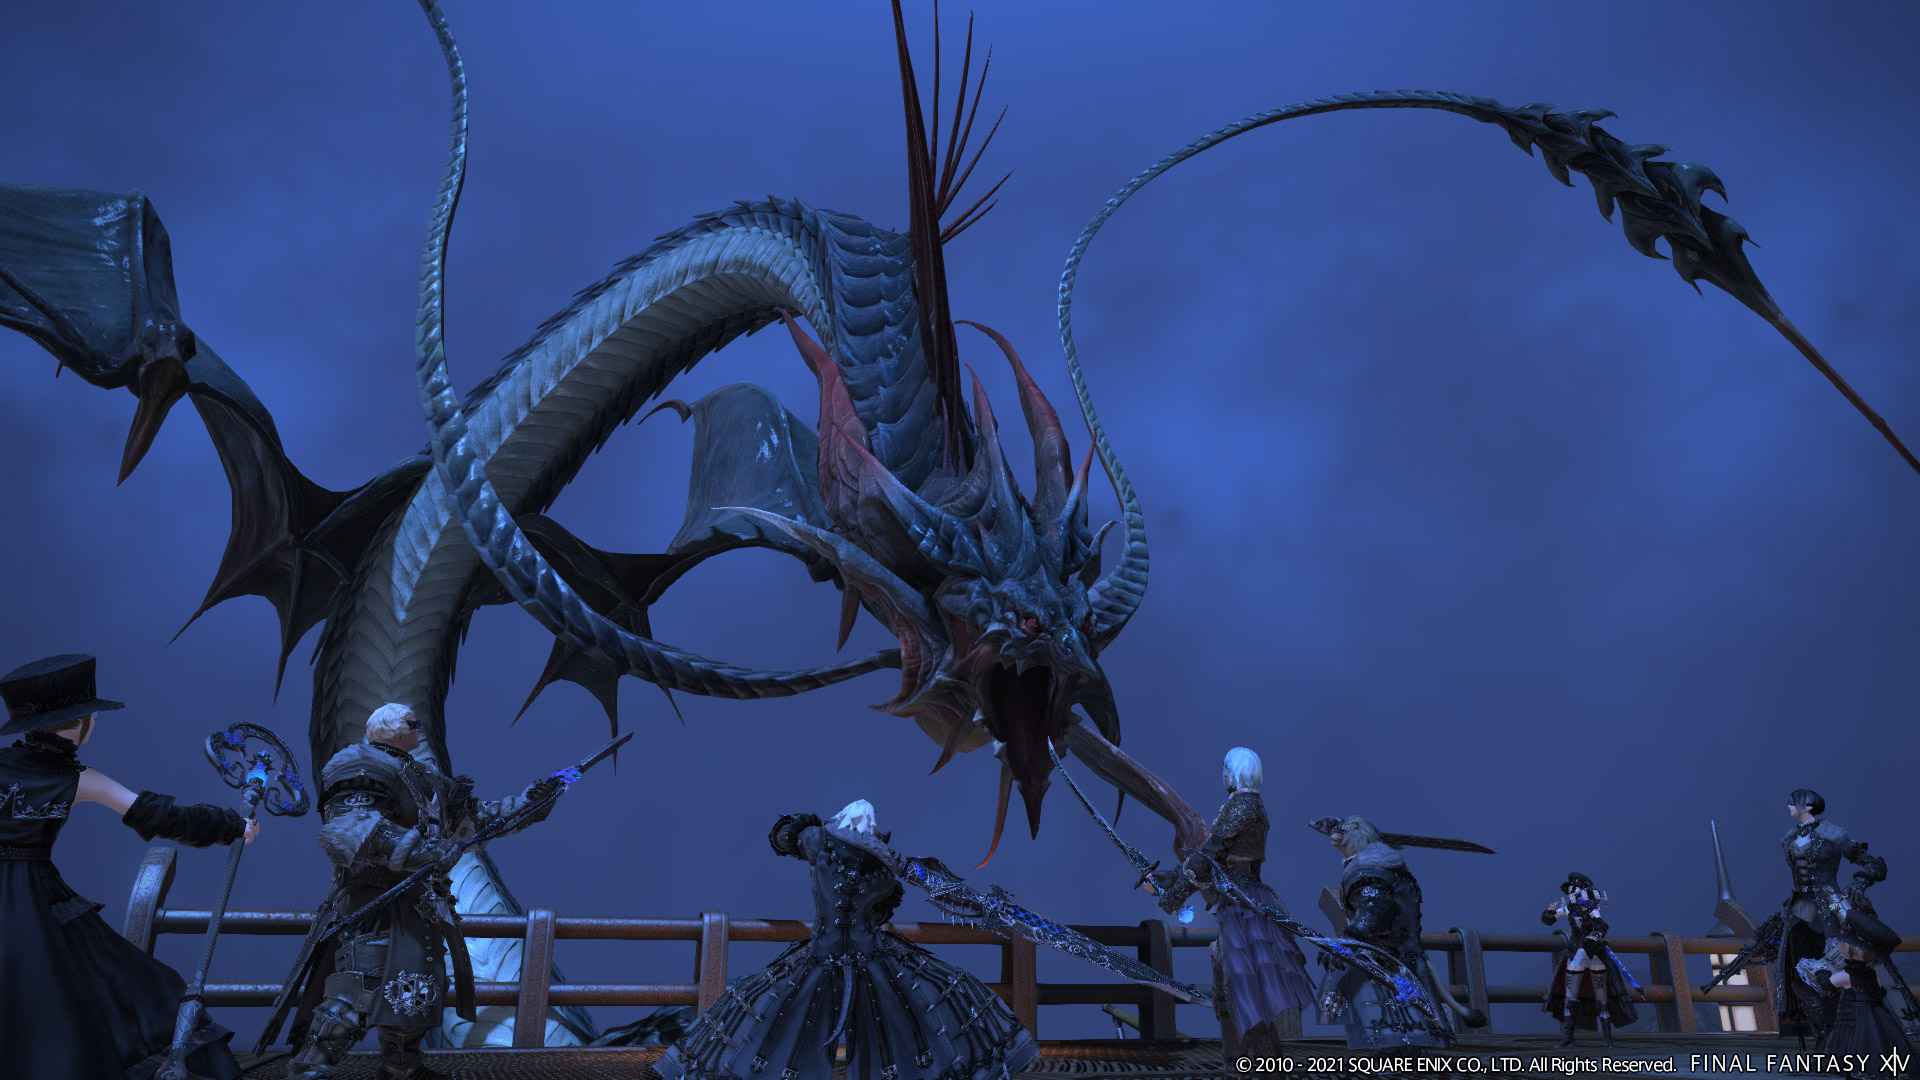 Final Fantasy 14 Open Beta on PS5 is Now Live